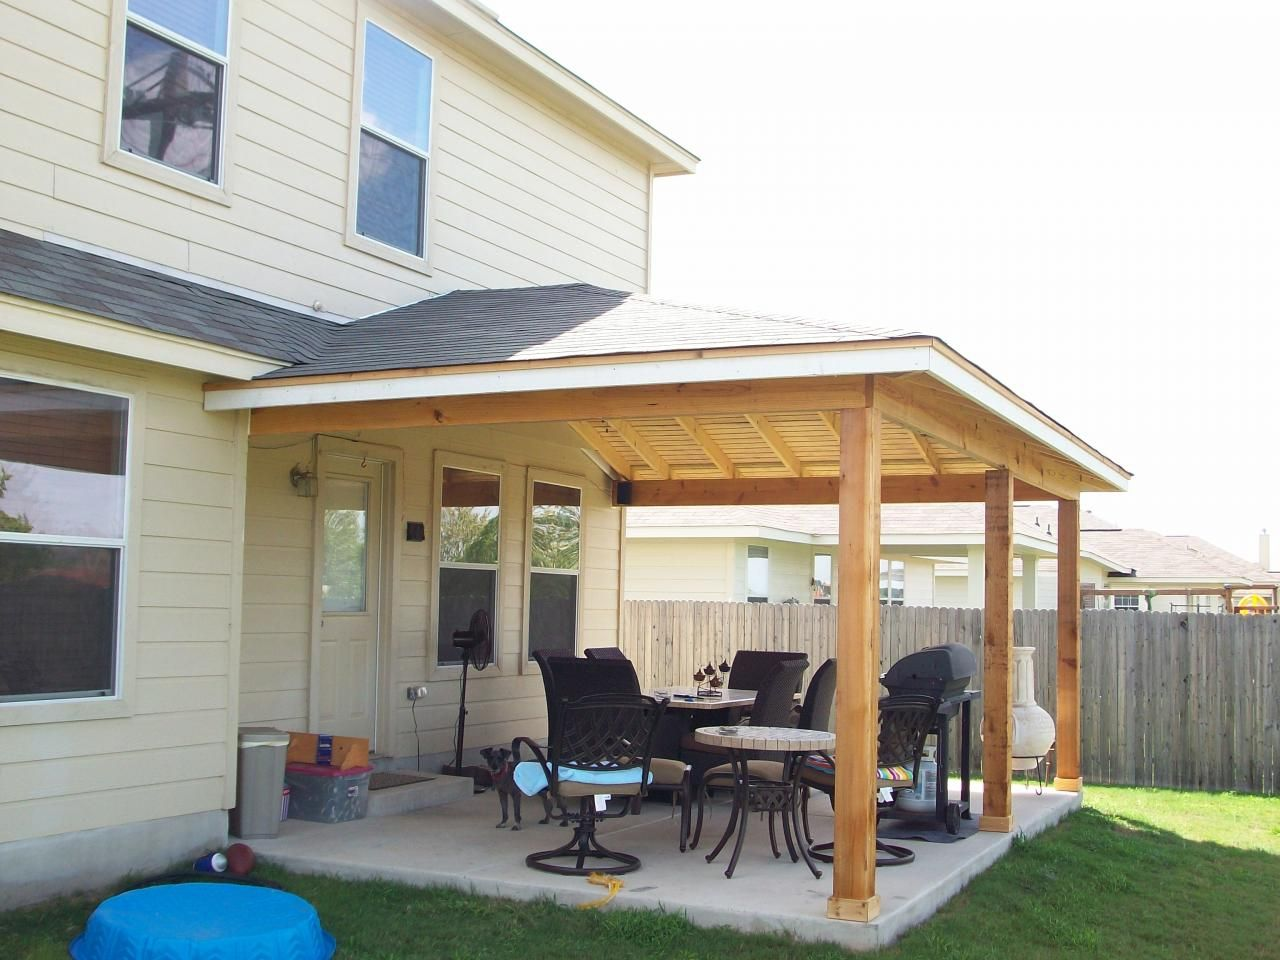 Patio Designs | ... Patio Covers Pictures Video Plans Designs Ideas Free  Patio Cover